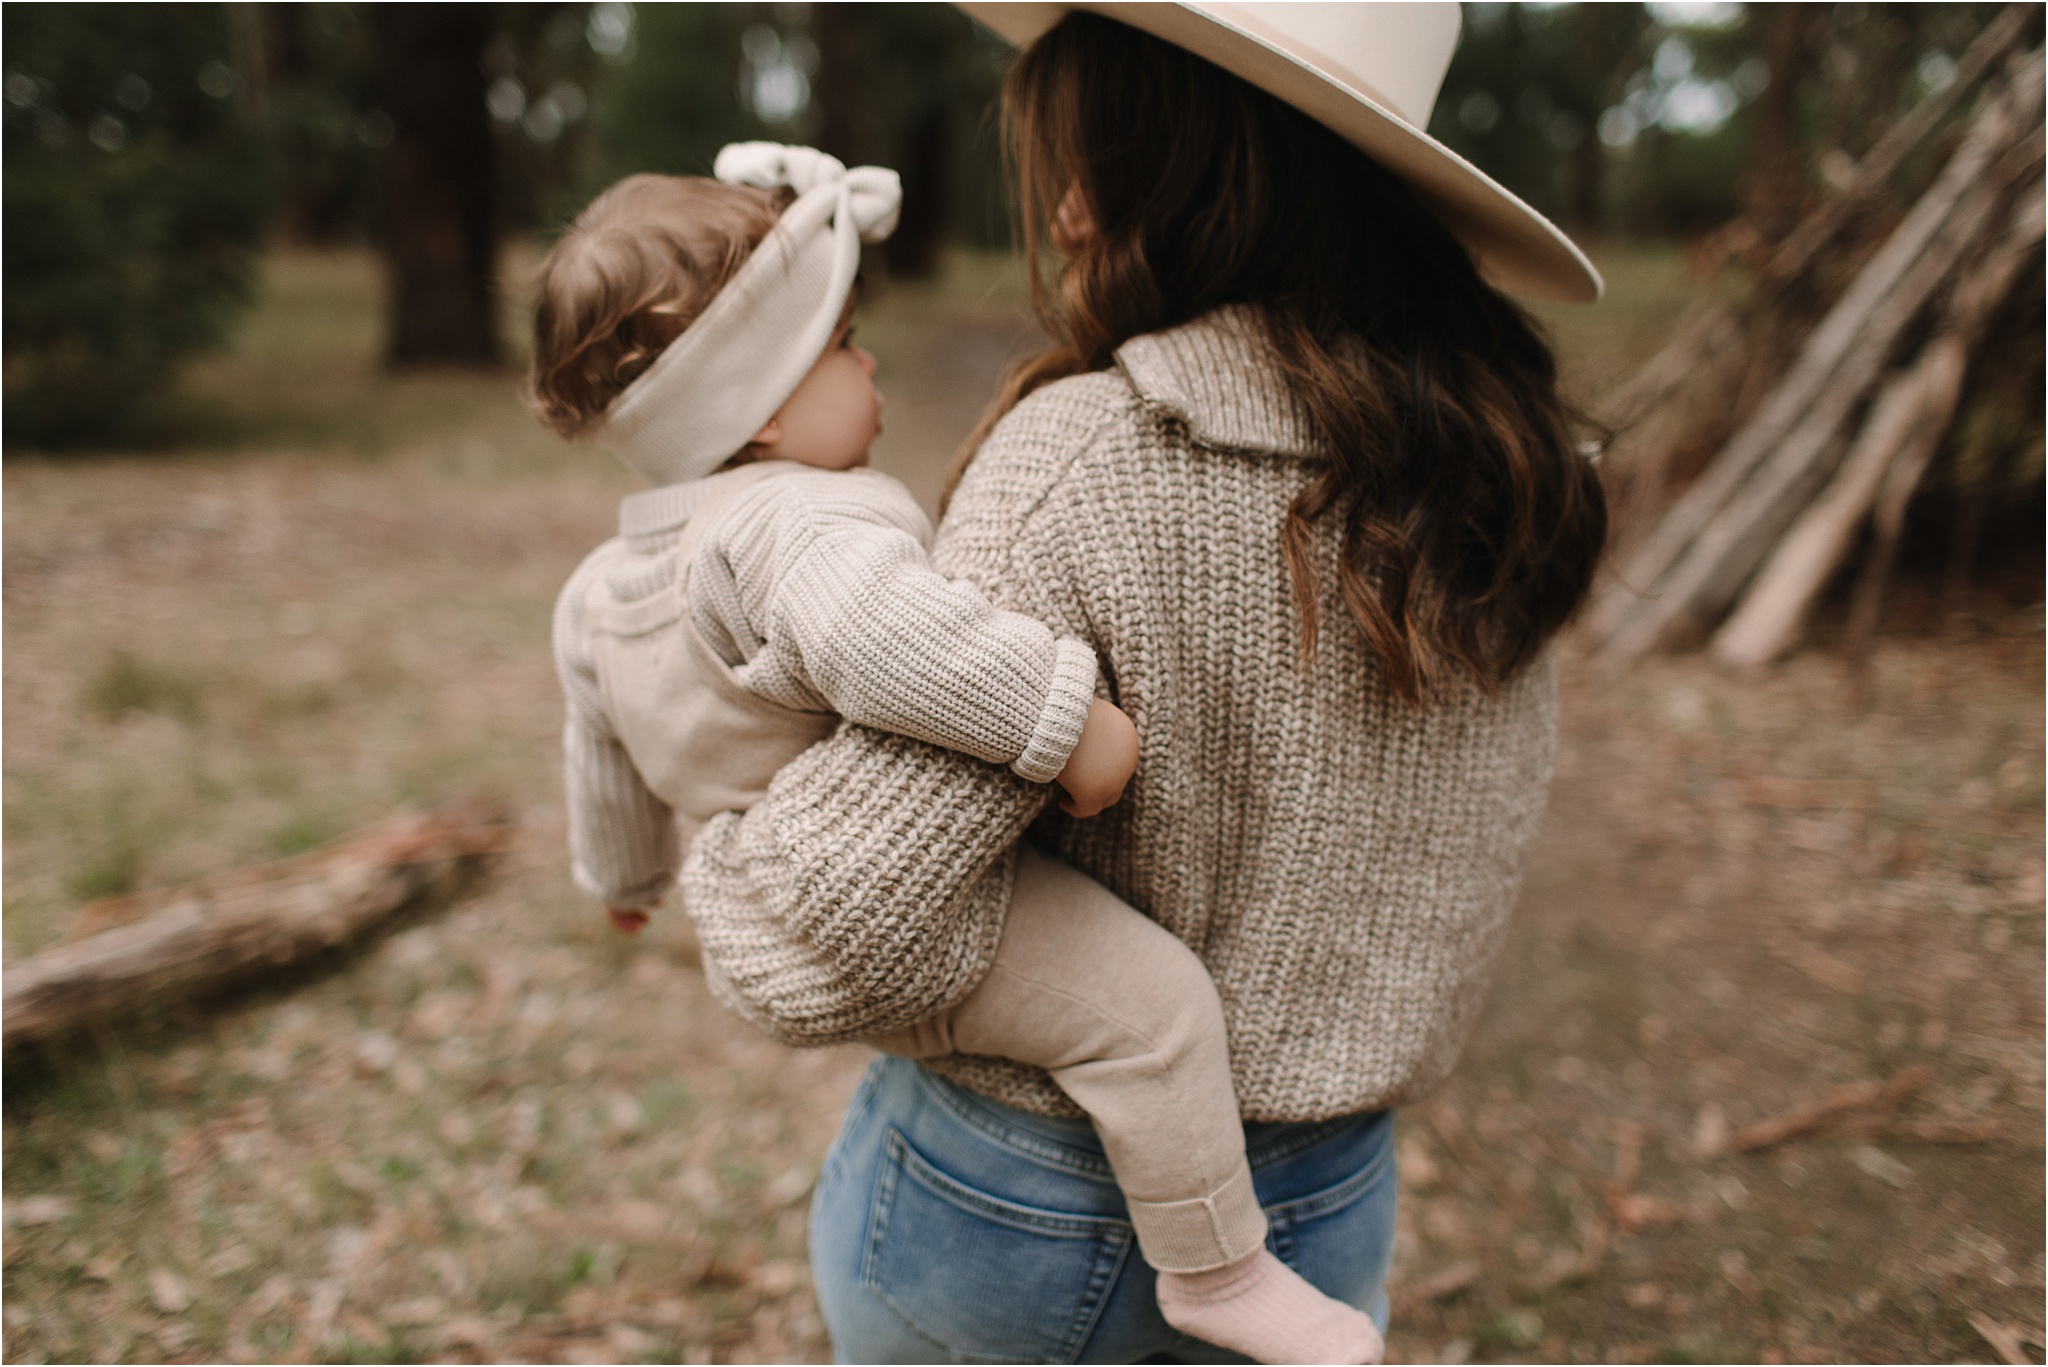 A portrait of Mum holding baby, walking away from the camera